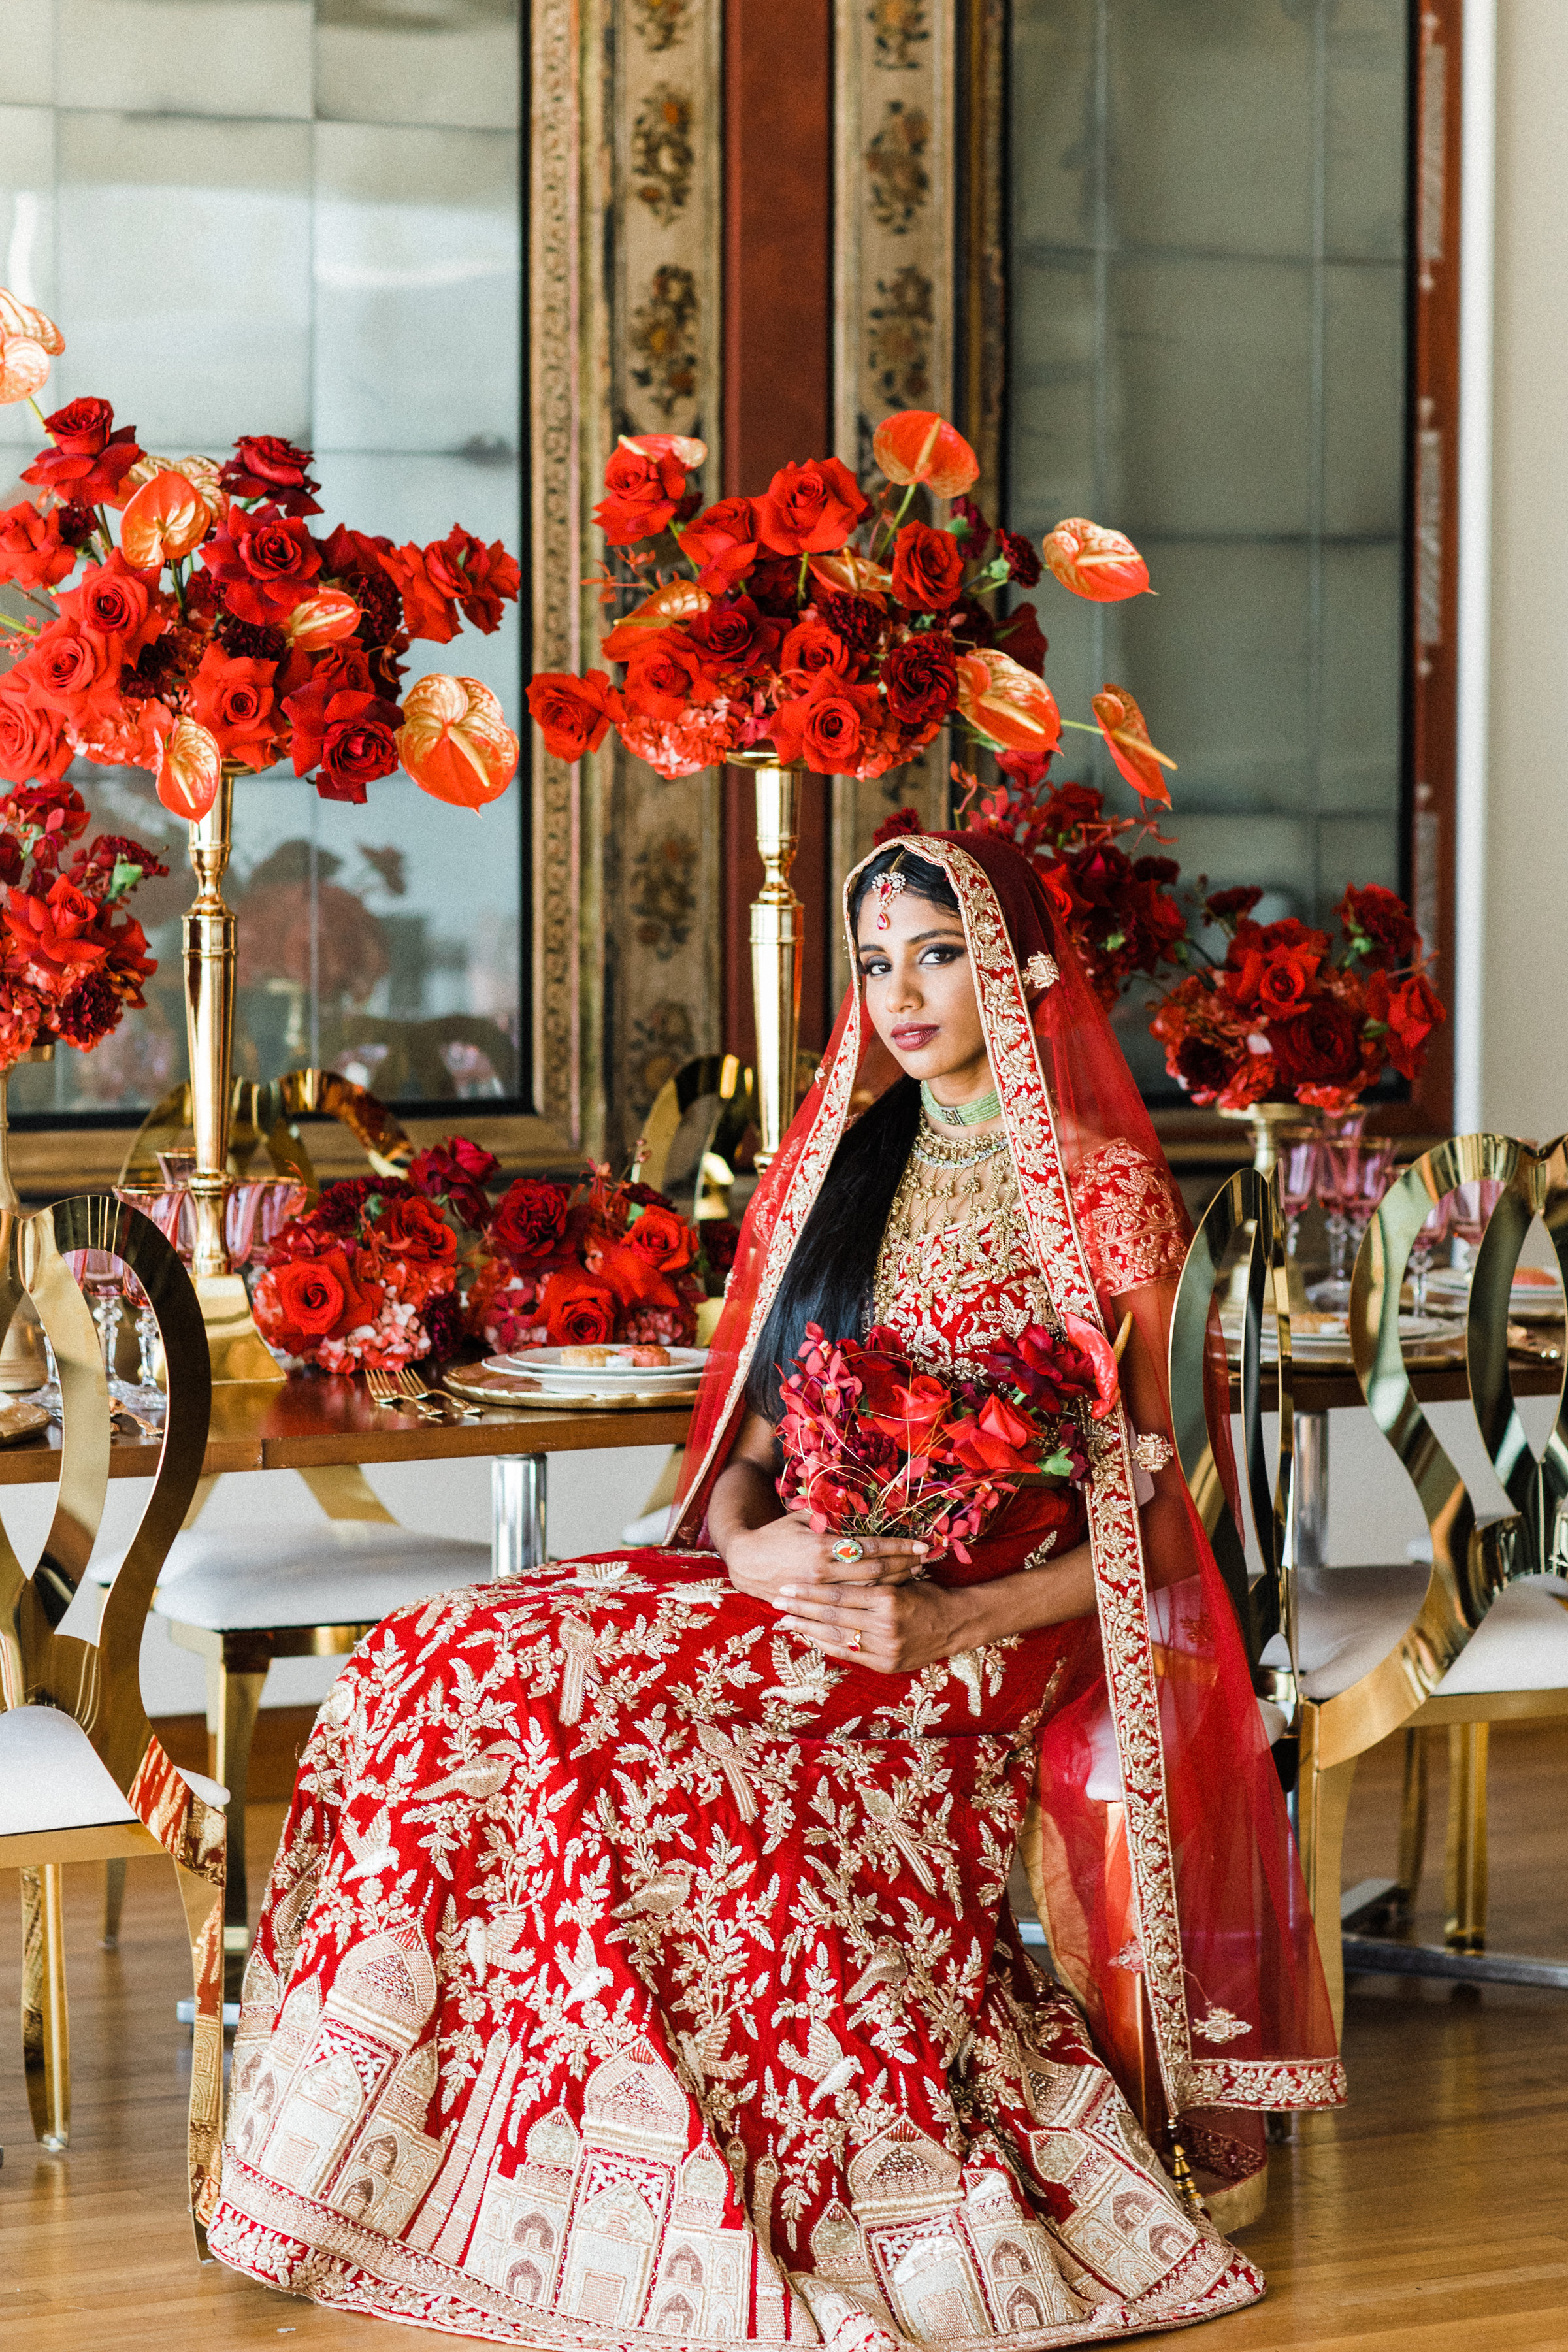 August In Bloom - Bride at reception - Scarlet Sweetheart (Lavish Dulhan)